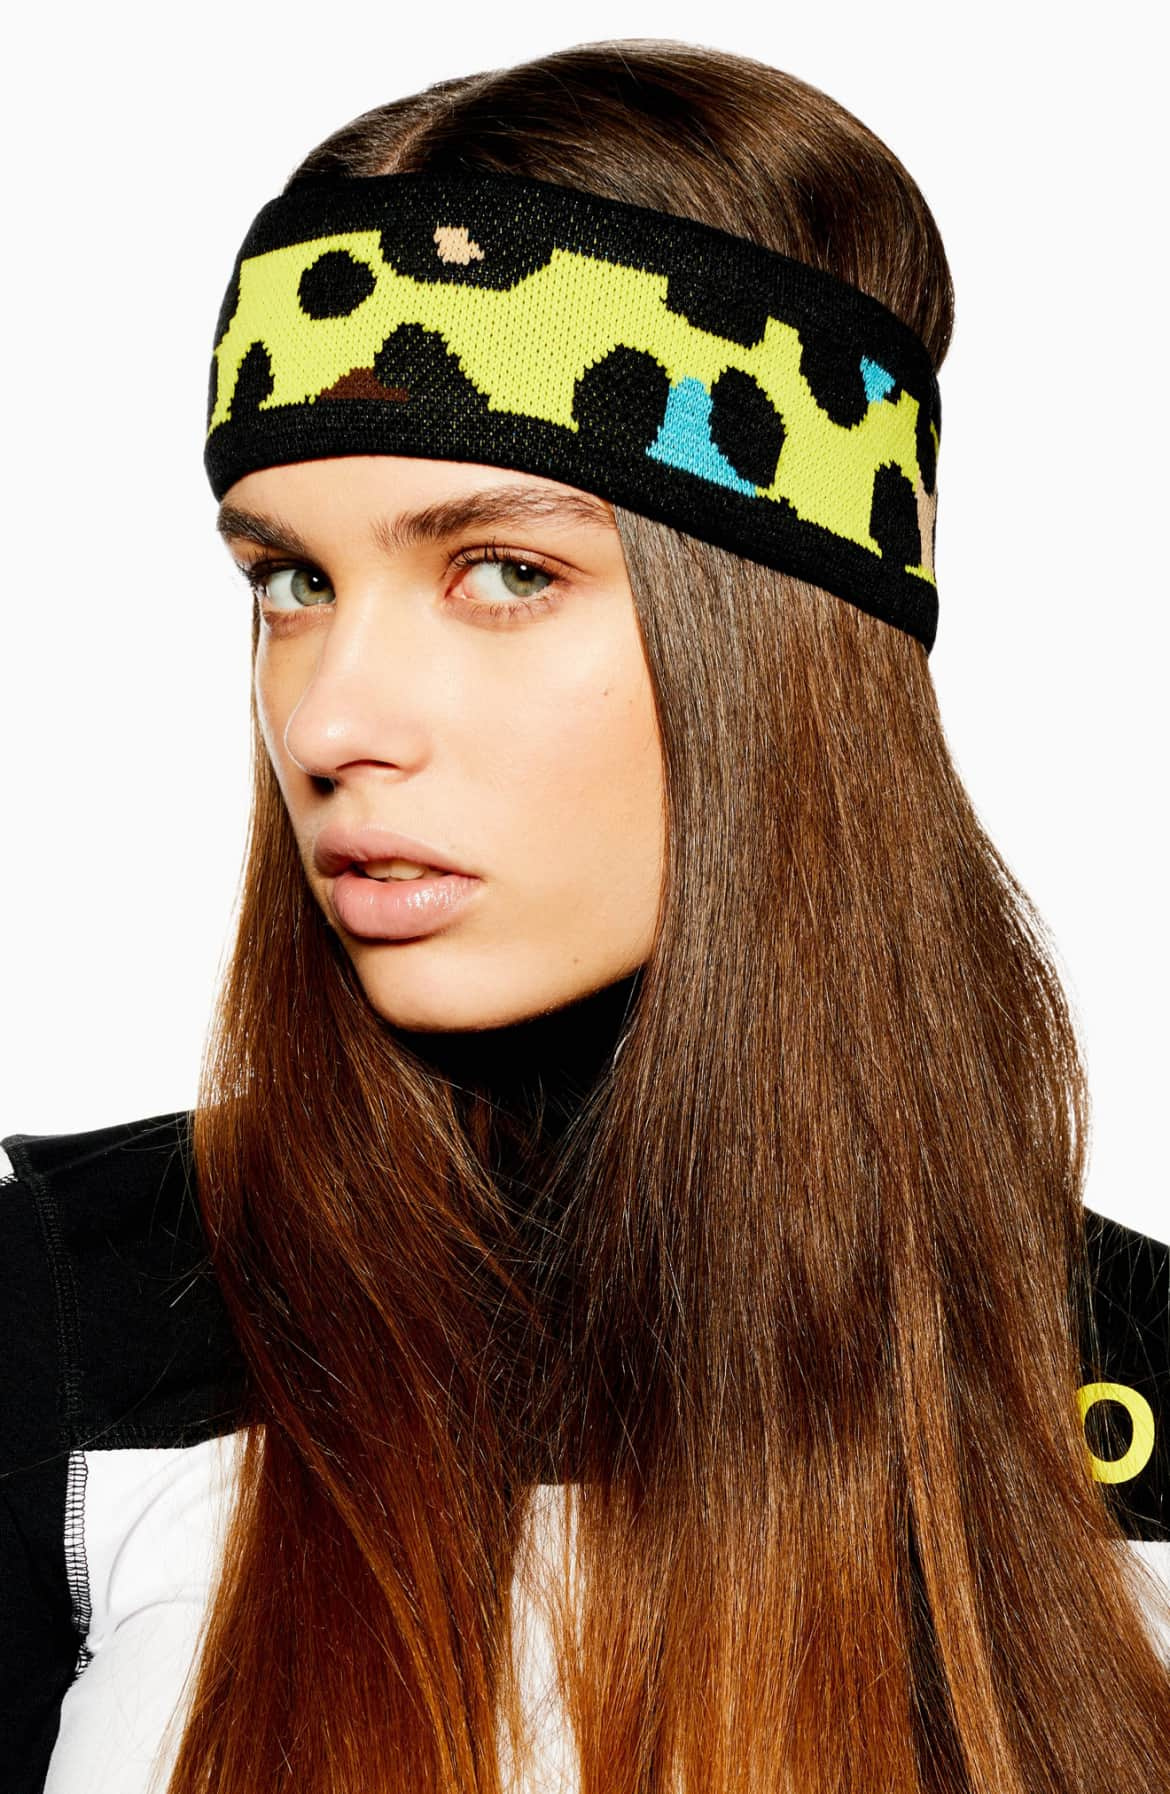 Elevate your cold-weather style with a cozy ear-warming headband featuring intarsia-knit graphics. $22 (Image: Nordstrom){ }